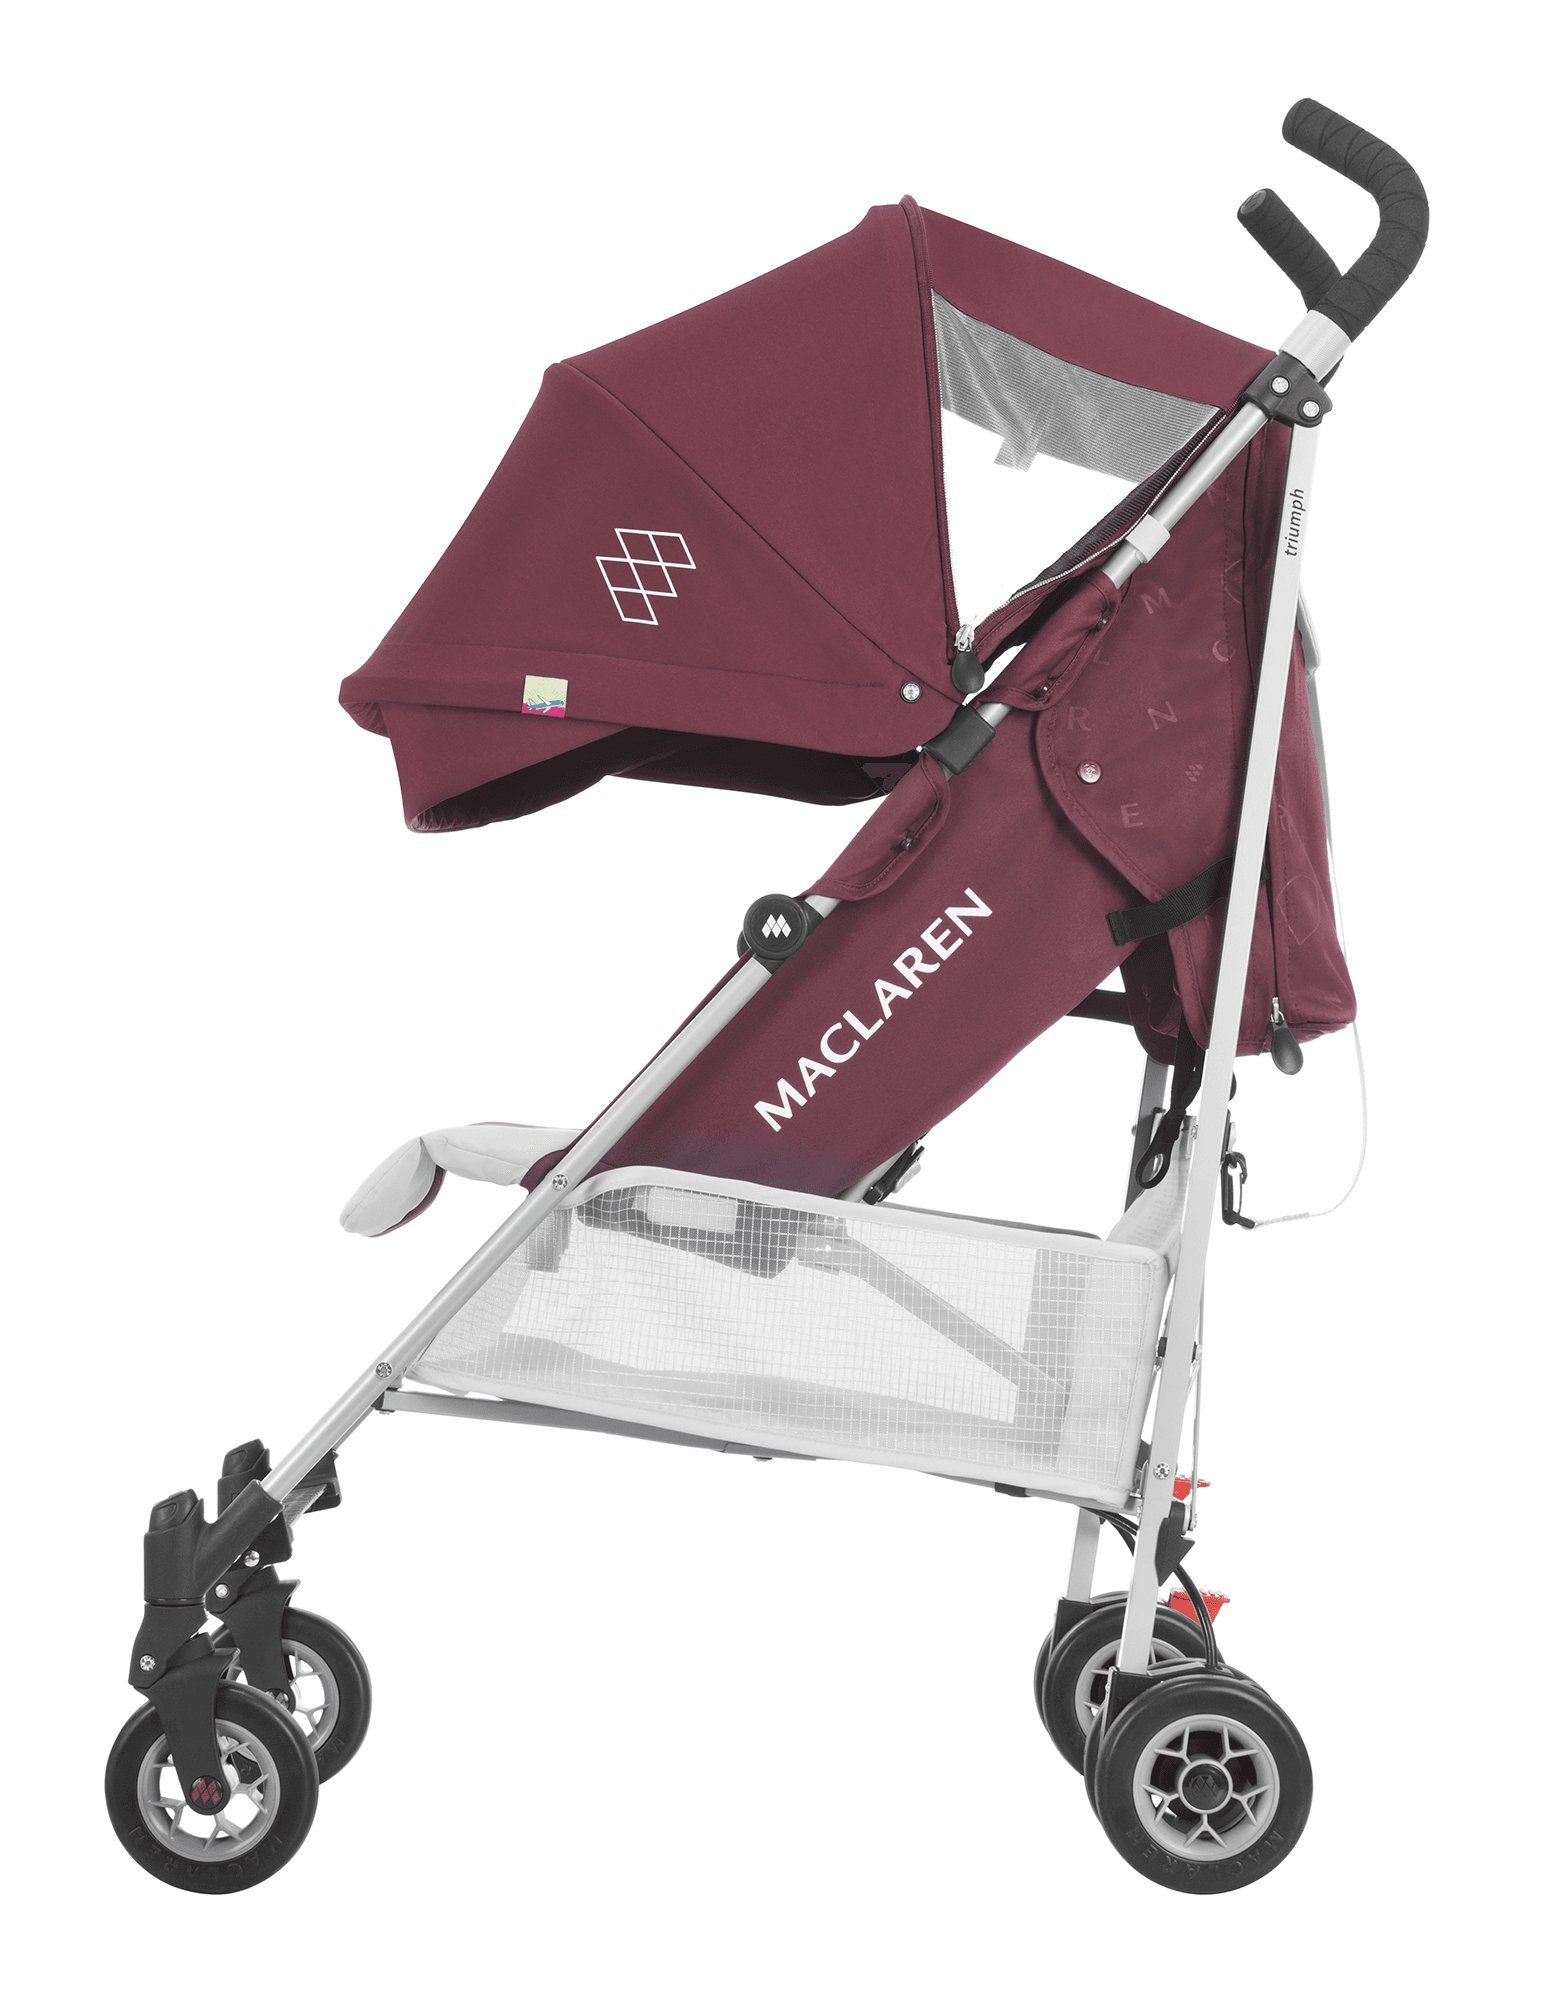 Maclaren Triumph Stroller - lightweight, compact Maclaren Basic weight of 5kg/ 11lb; ideal for children 6 months and up to 25kg/55lb Maclaren is the only brand to offer a sovereign lifetime warranty Extendable upf 50+ sun canopy and built-in sun visor 3